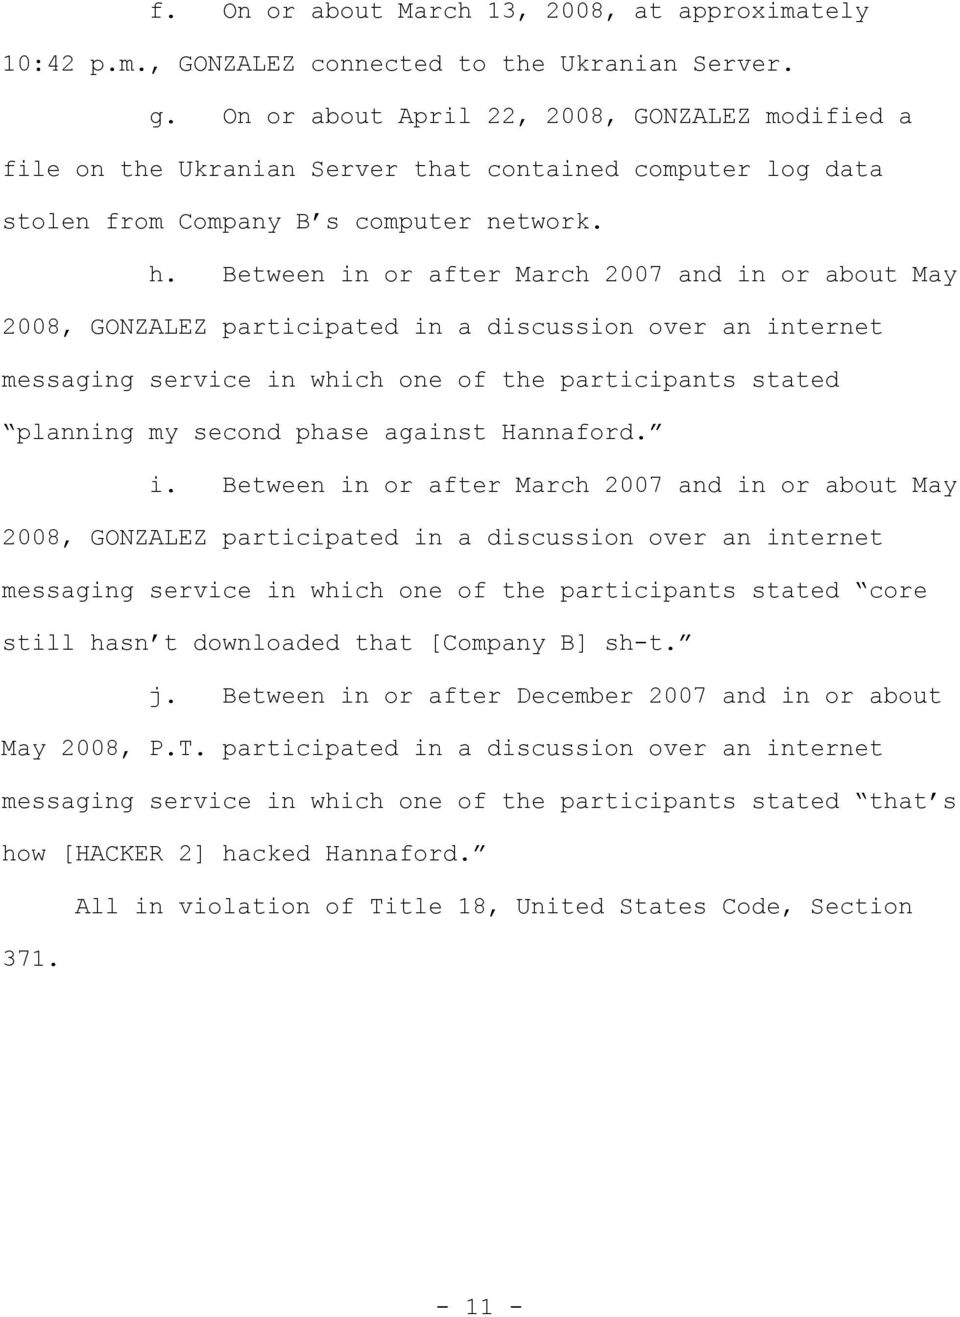 Between in or after March 2007 and in or about May 2008, GONZALEZ participated in a discussion over an internet messaging service in which one of the participants stated planning my second phase